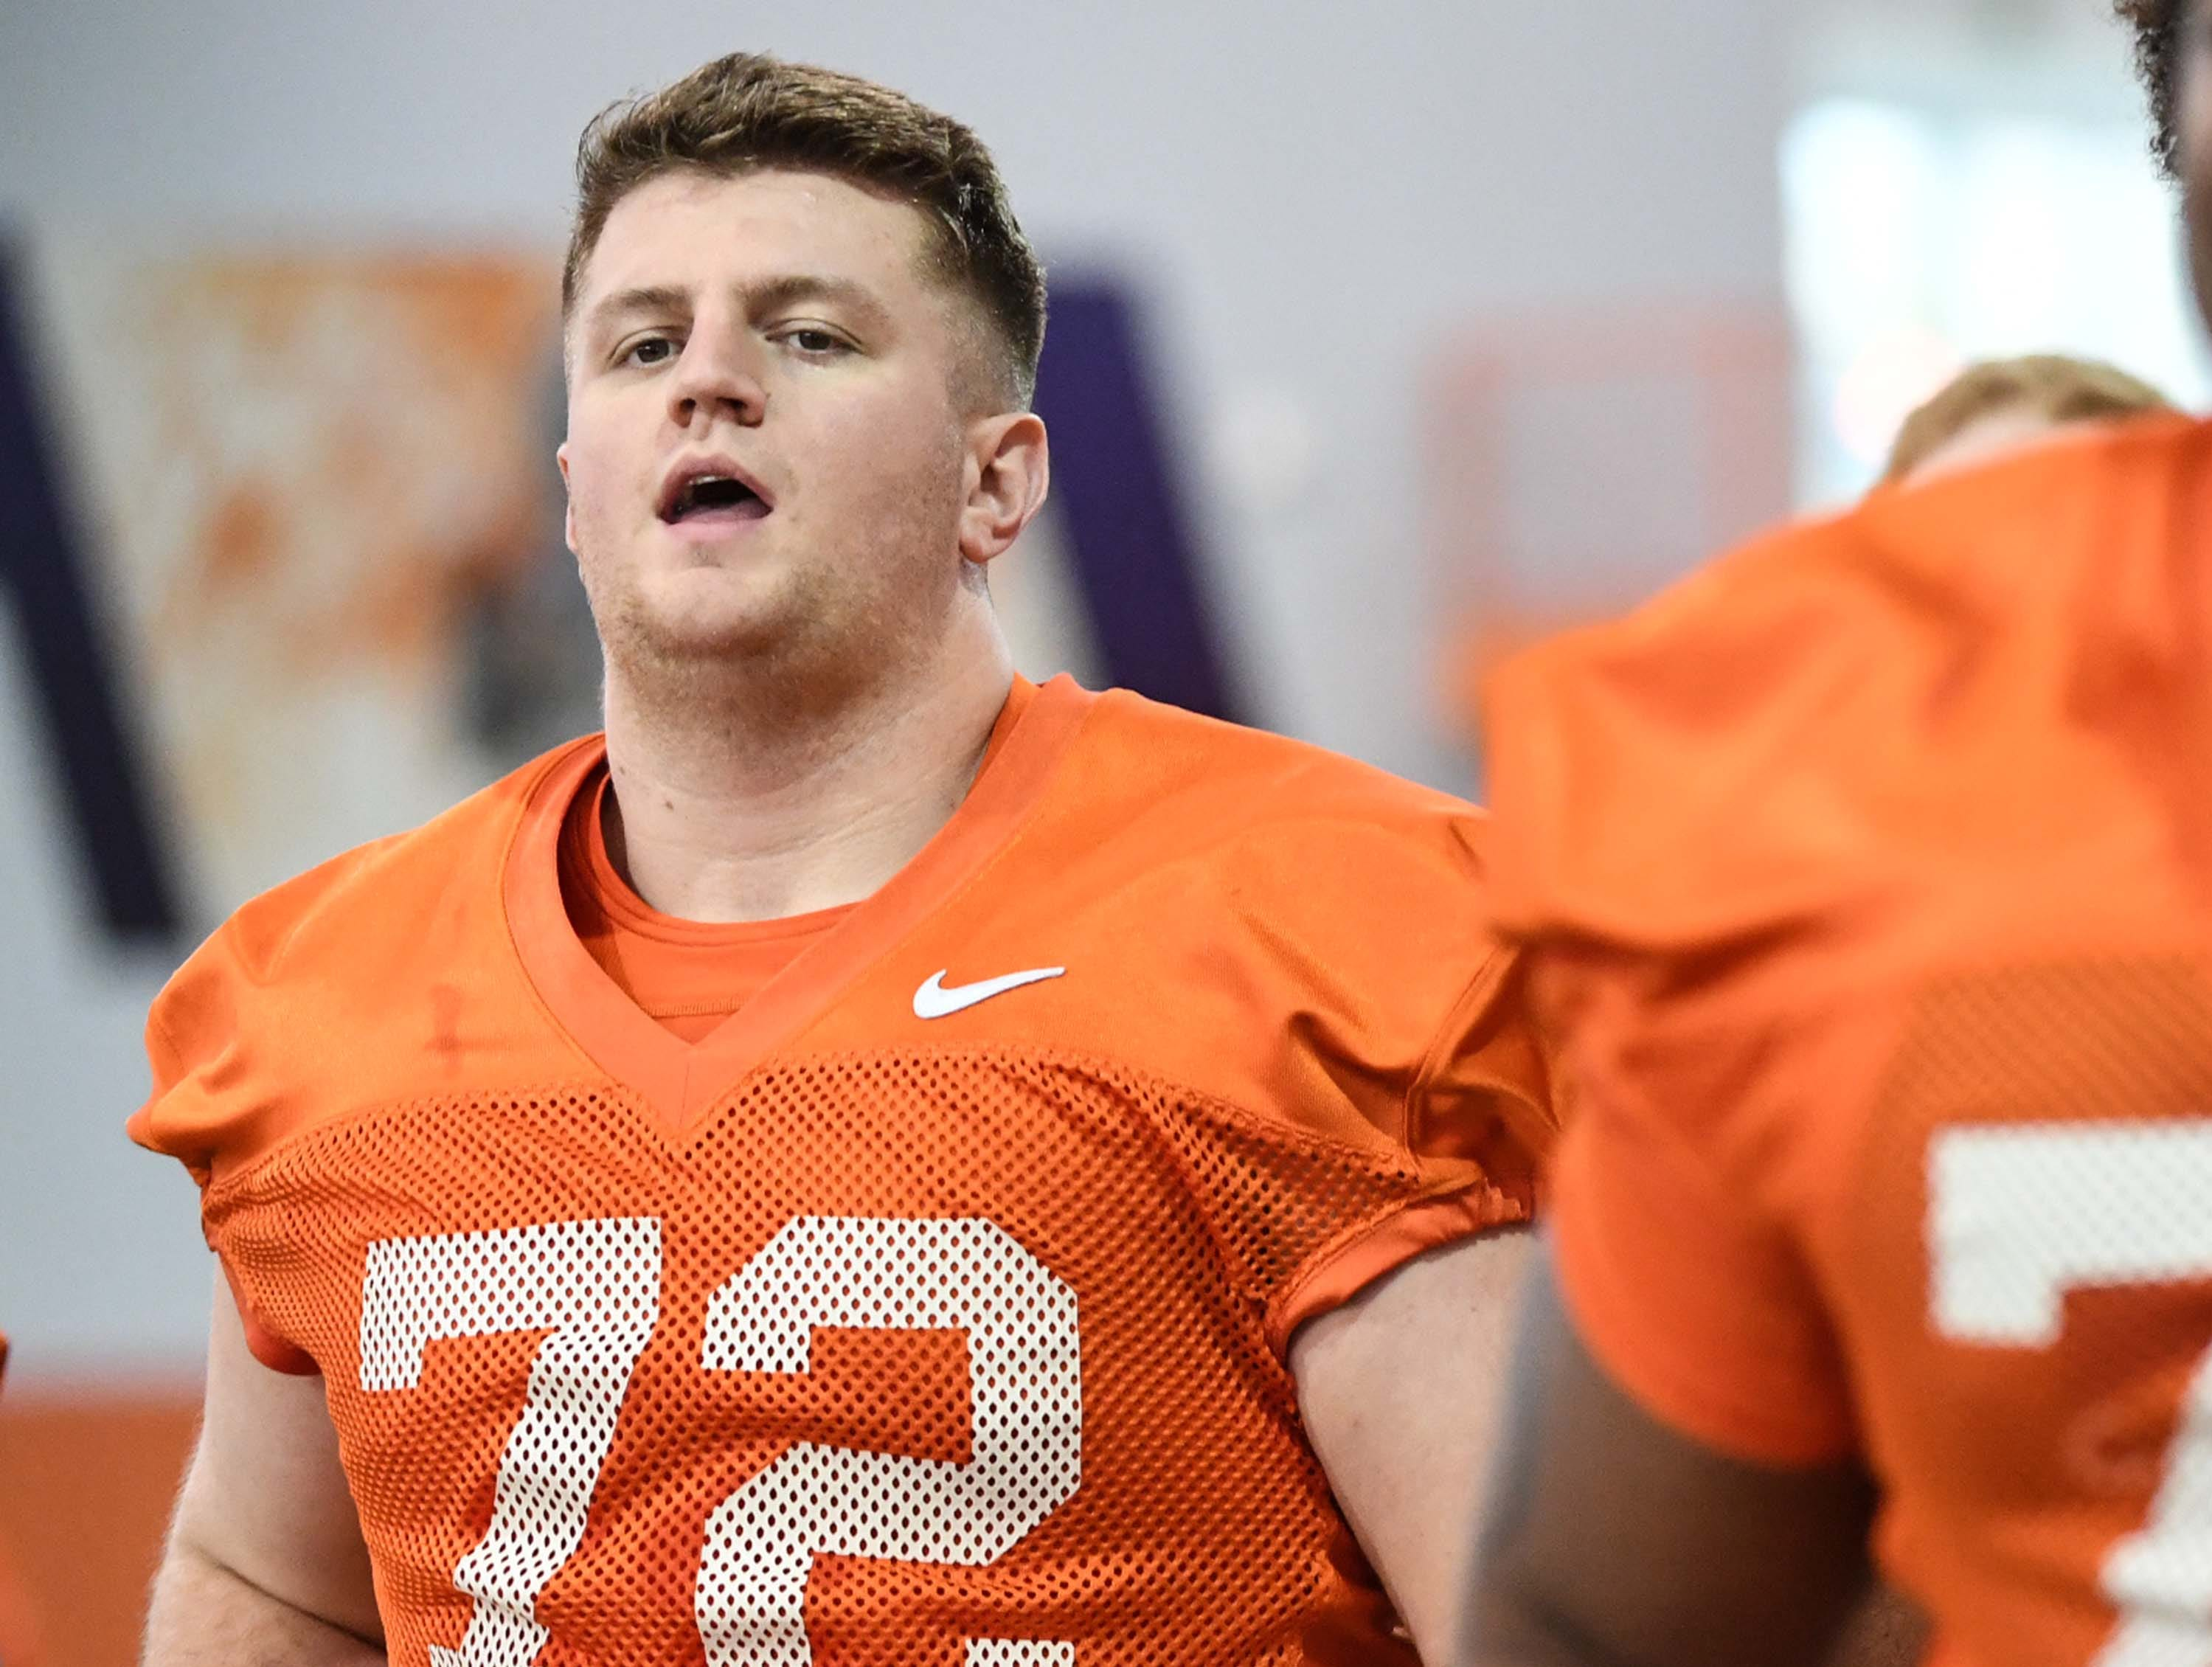 Clemson offensive lineman Blake Vinson (72) runs during the first practice at the Clemson Indoor Practice Facility in Clemson Wednesday, February 27, 2019.